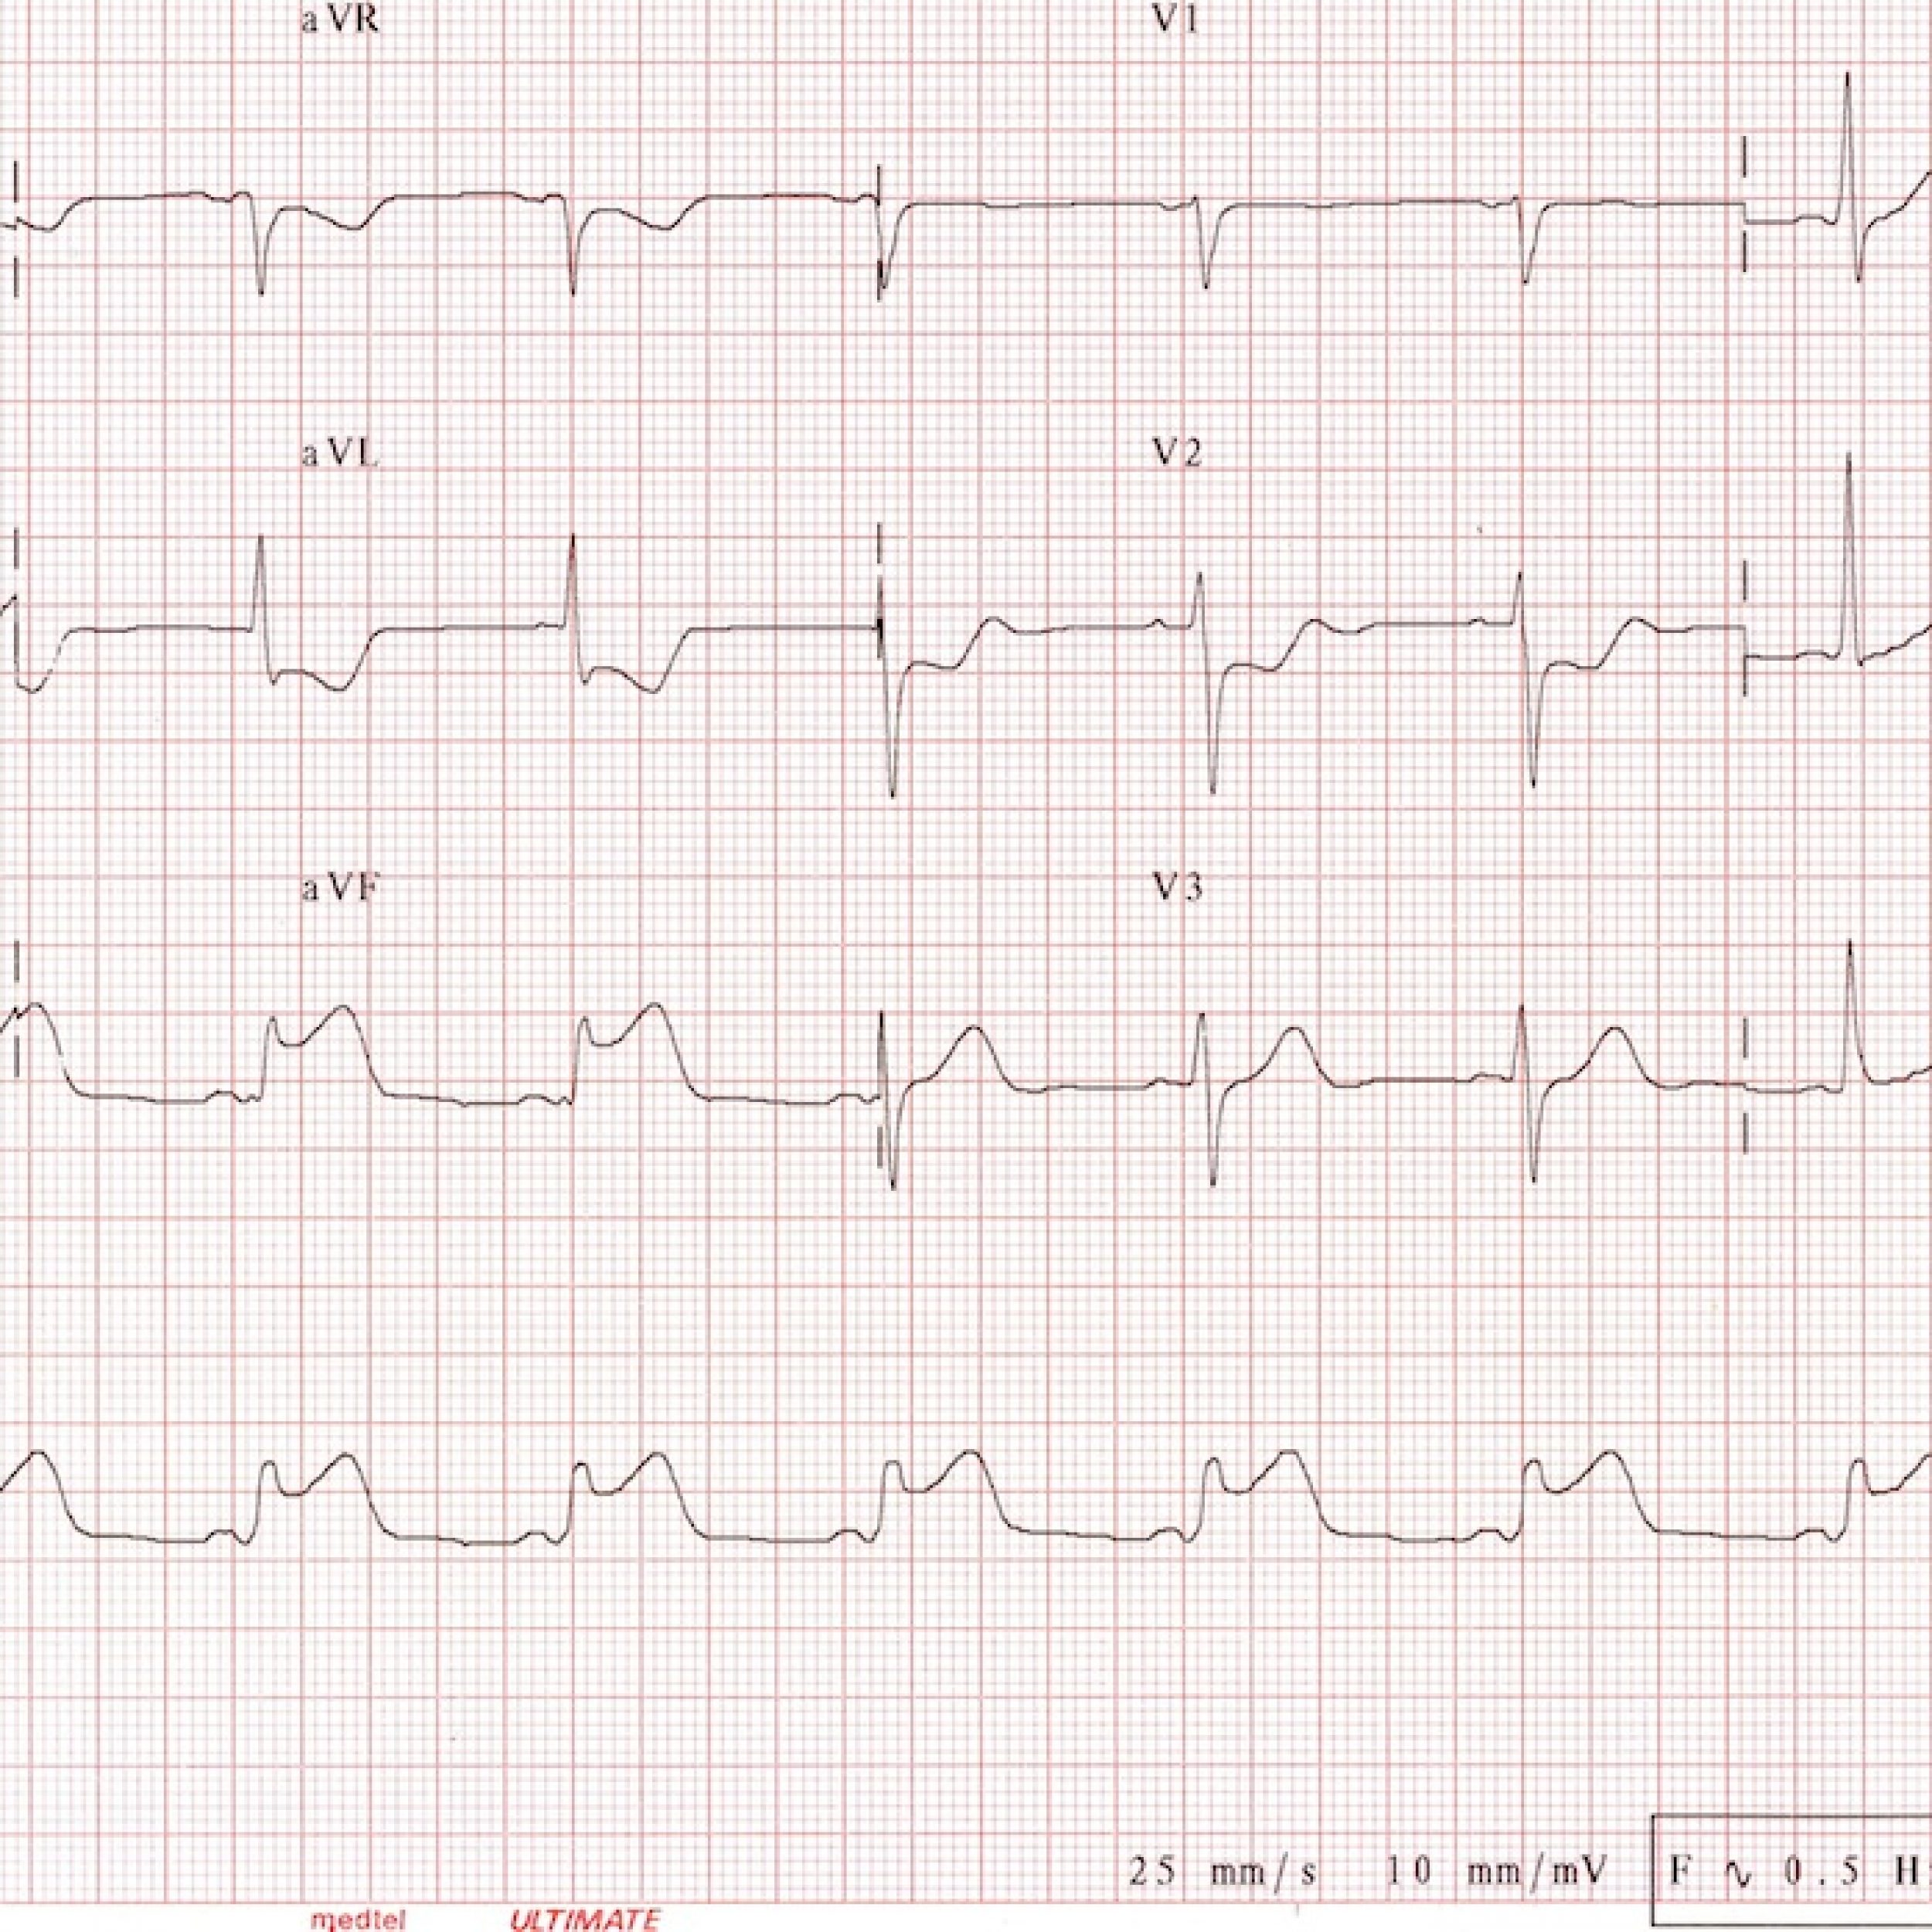 12 lead ecg images Cached